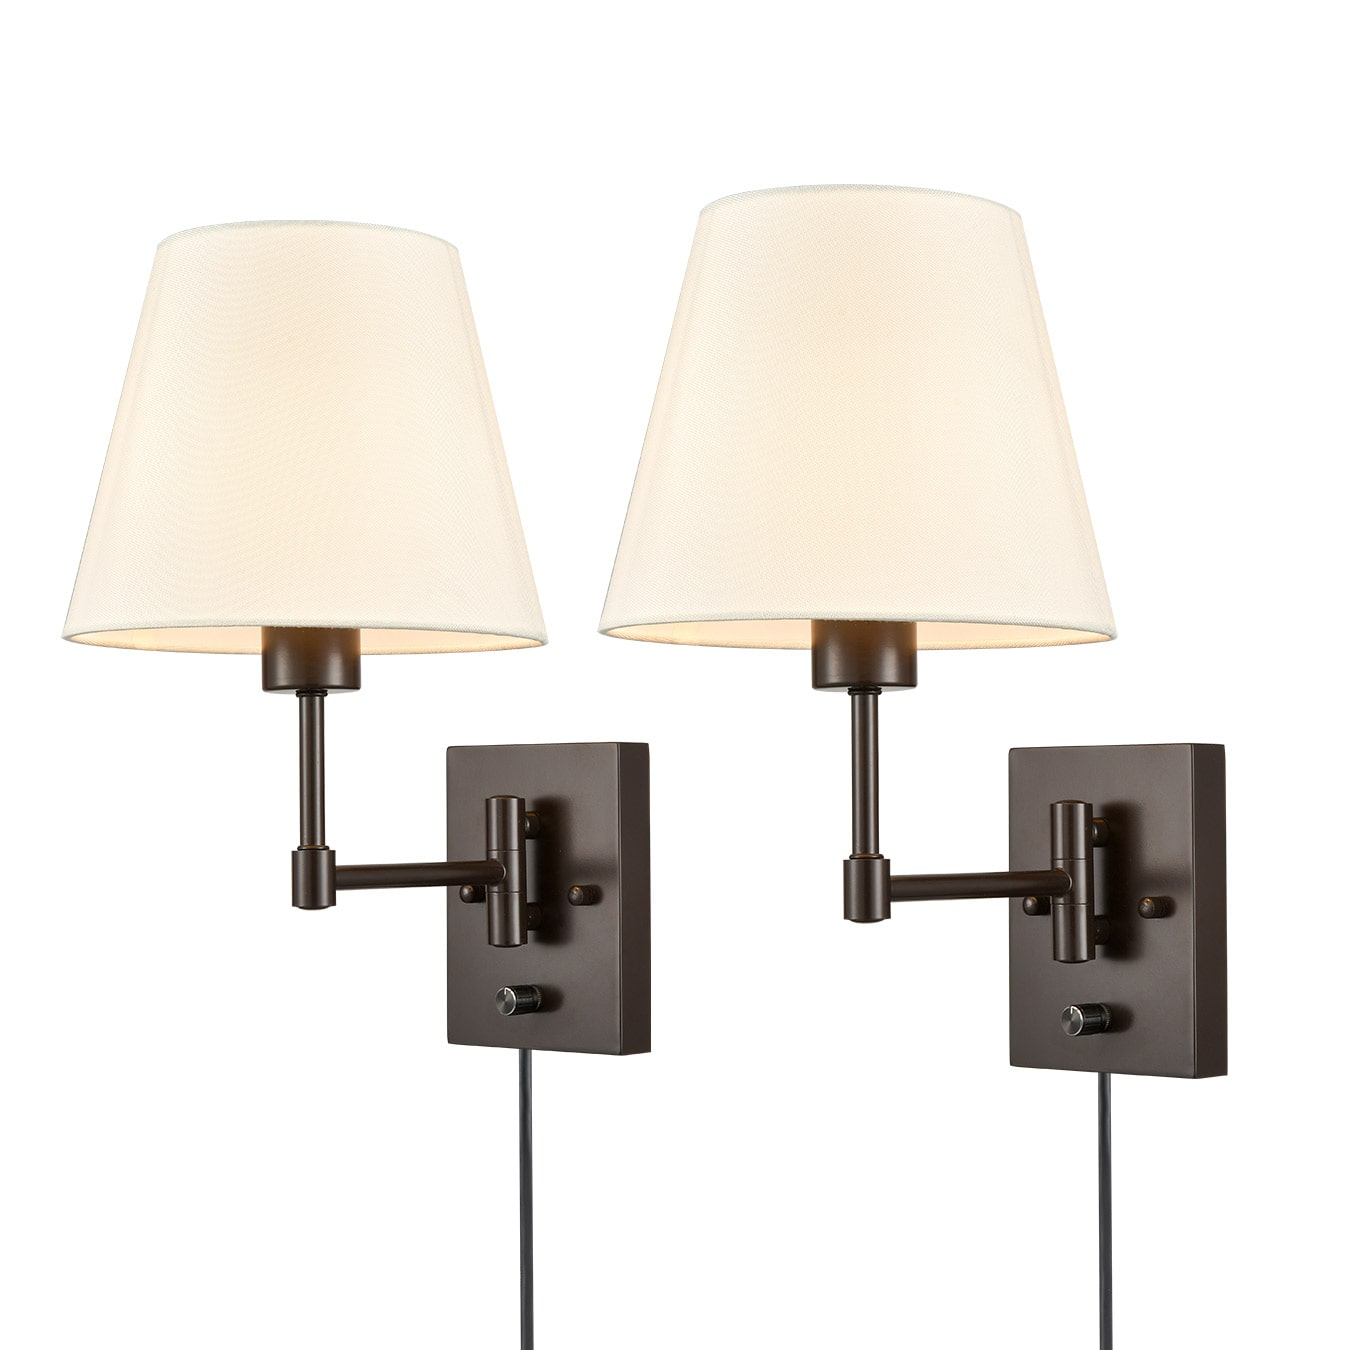 2 Pack Plug in Wall Lights Fabric Swing Arm Wall Lamps